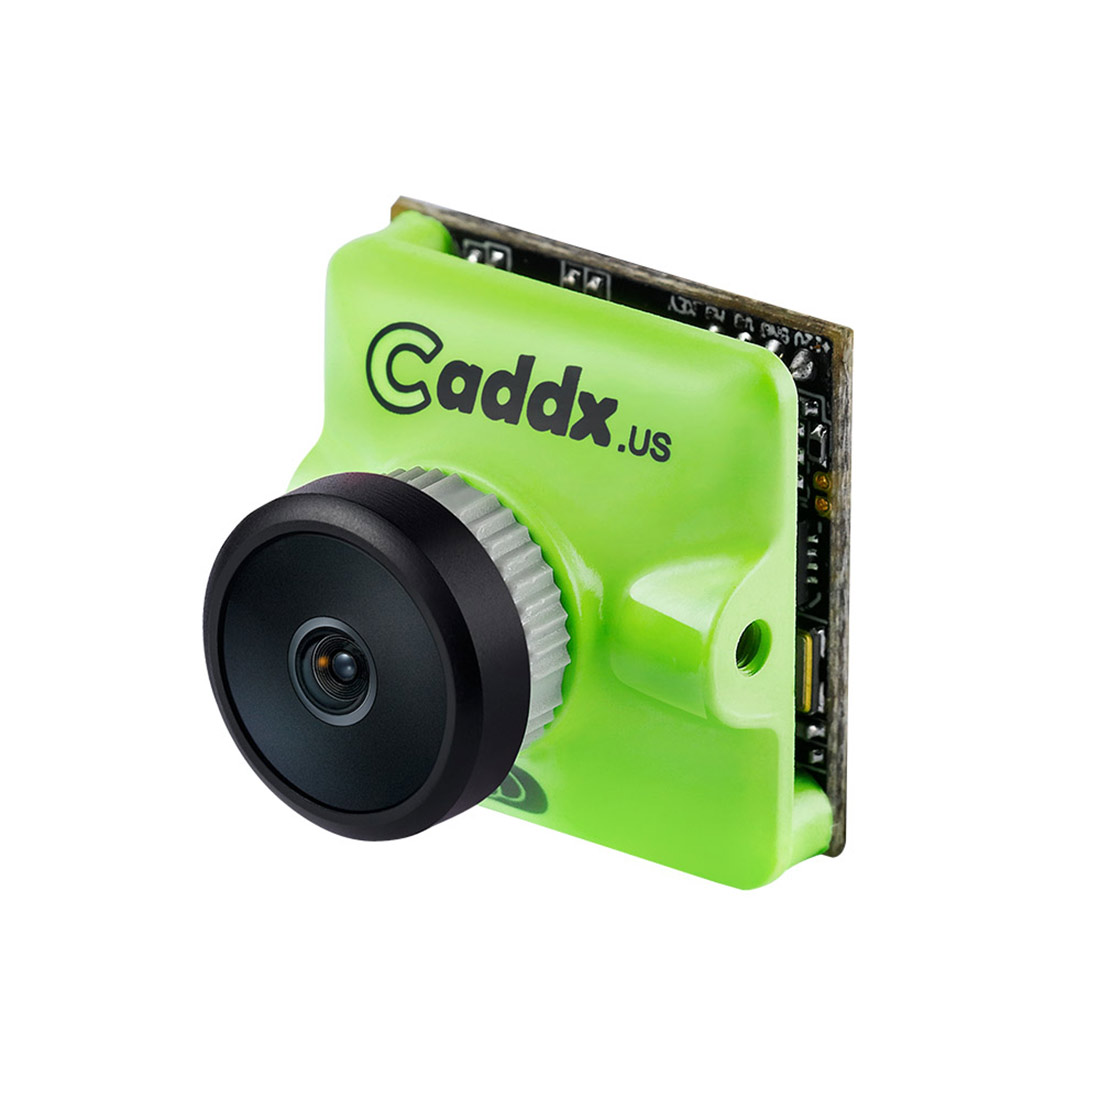 Caddx us Turbo Micro SDR2 1200TVL FPV Camera Double Scan Super WDR 1 2 8 inch